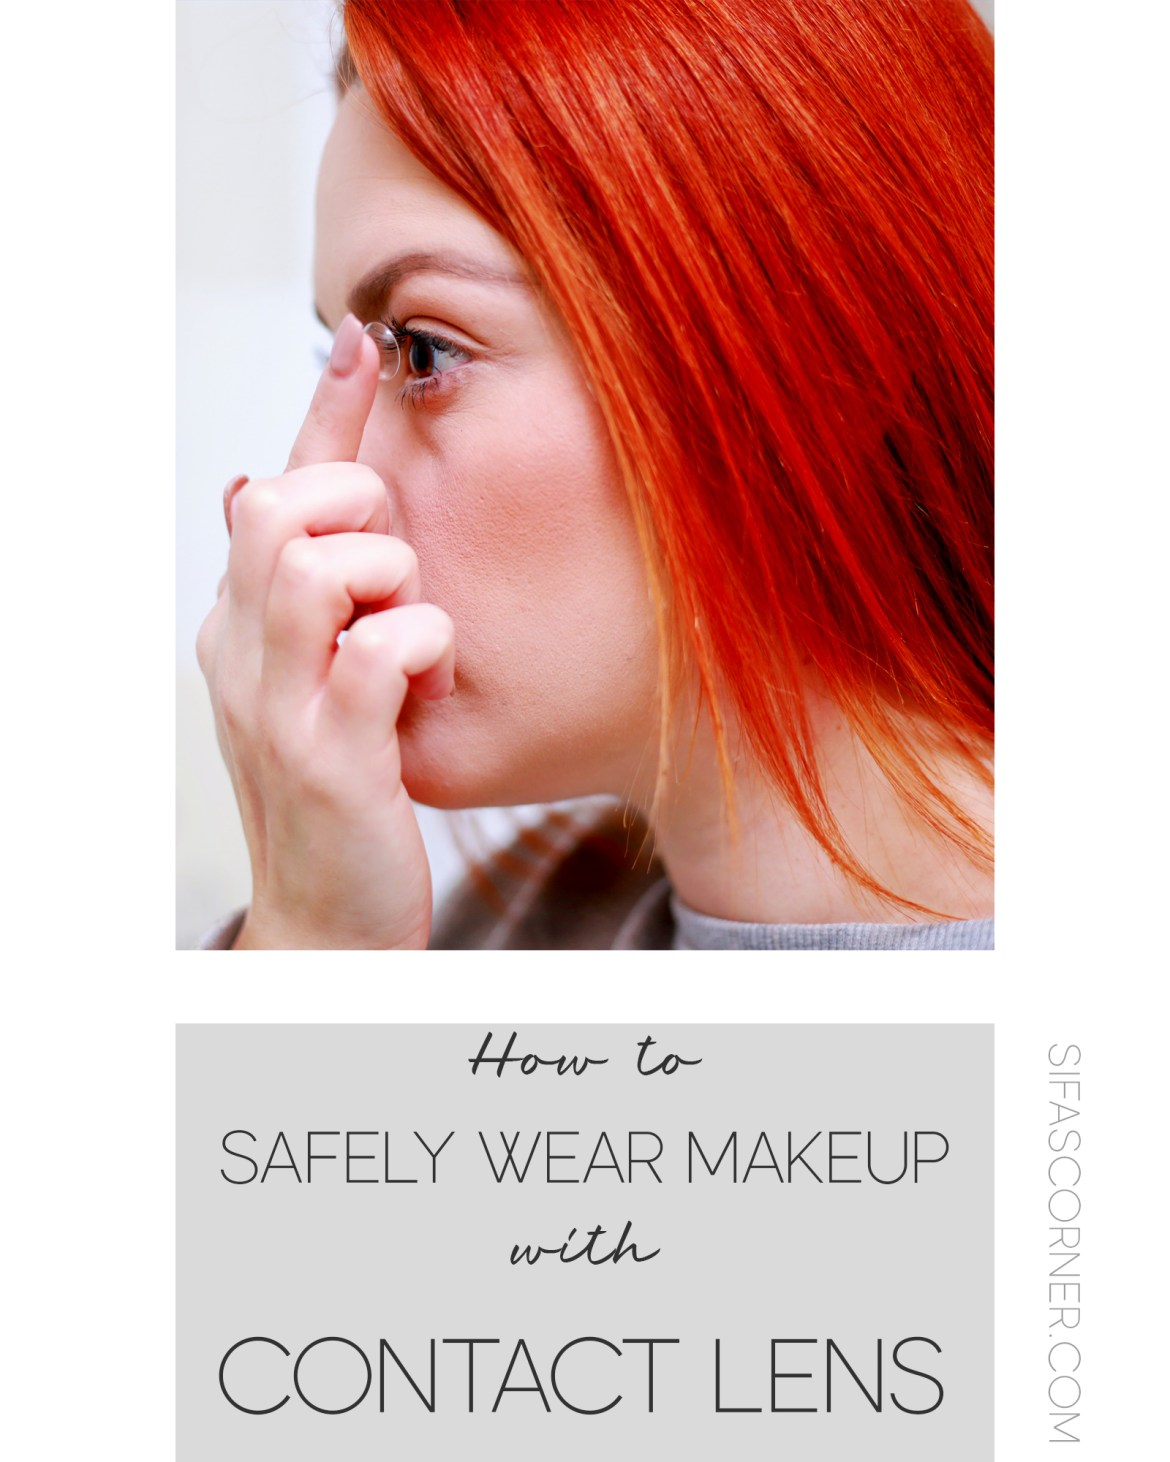 how to safely wear contact lens with makeup